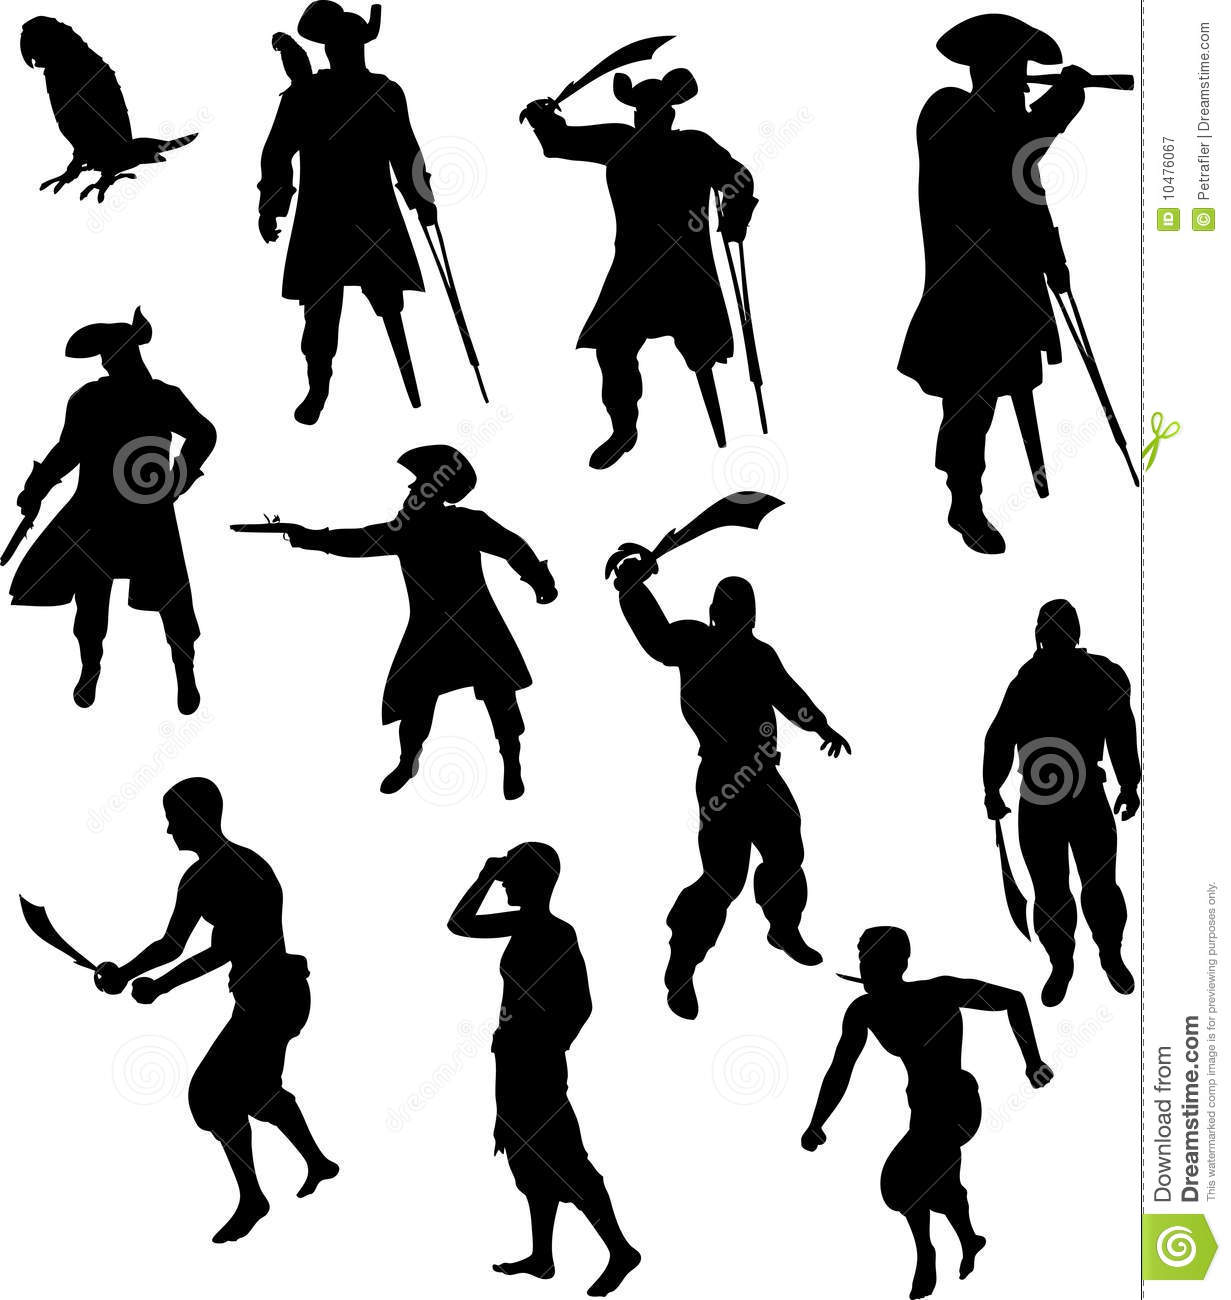 Pirate Silhouettes Royalty Free Stock Photography - Image ...